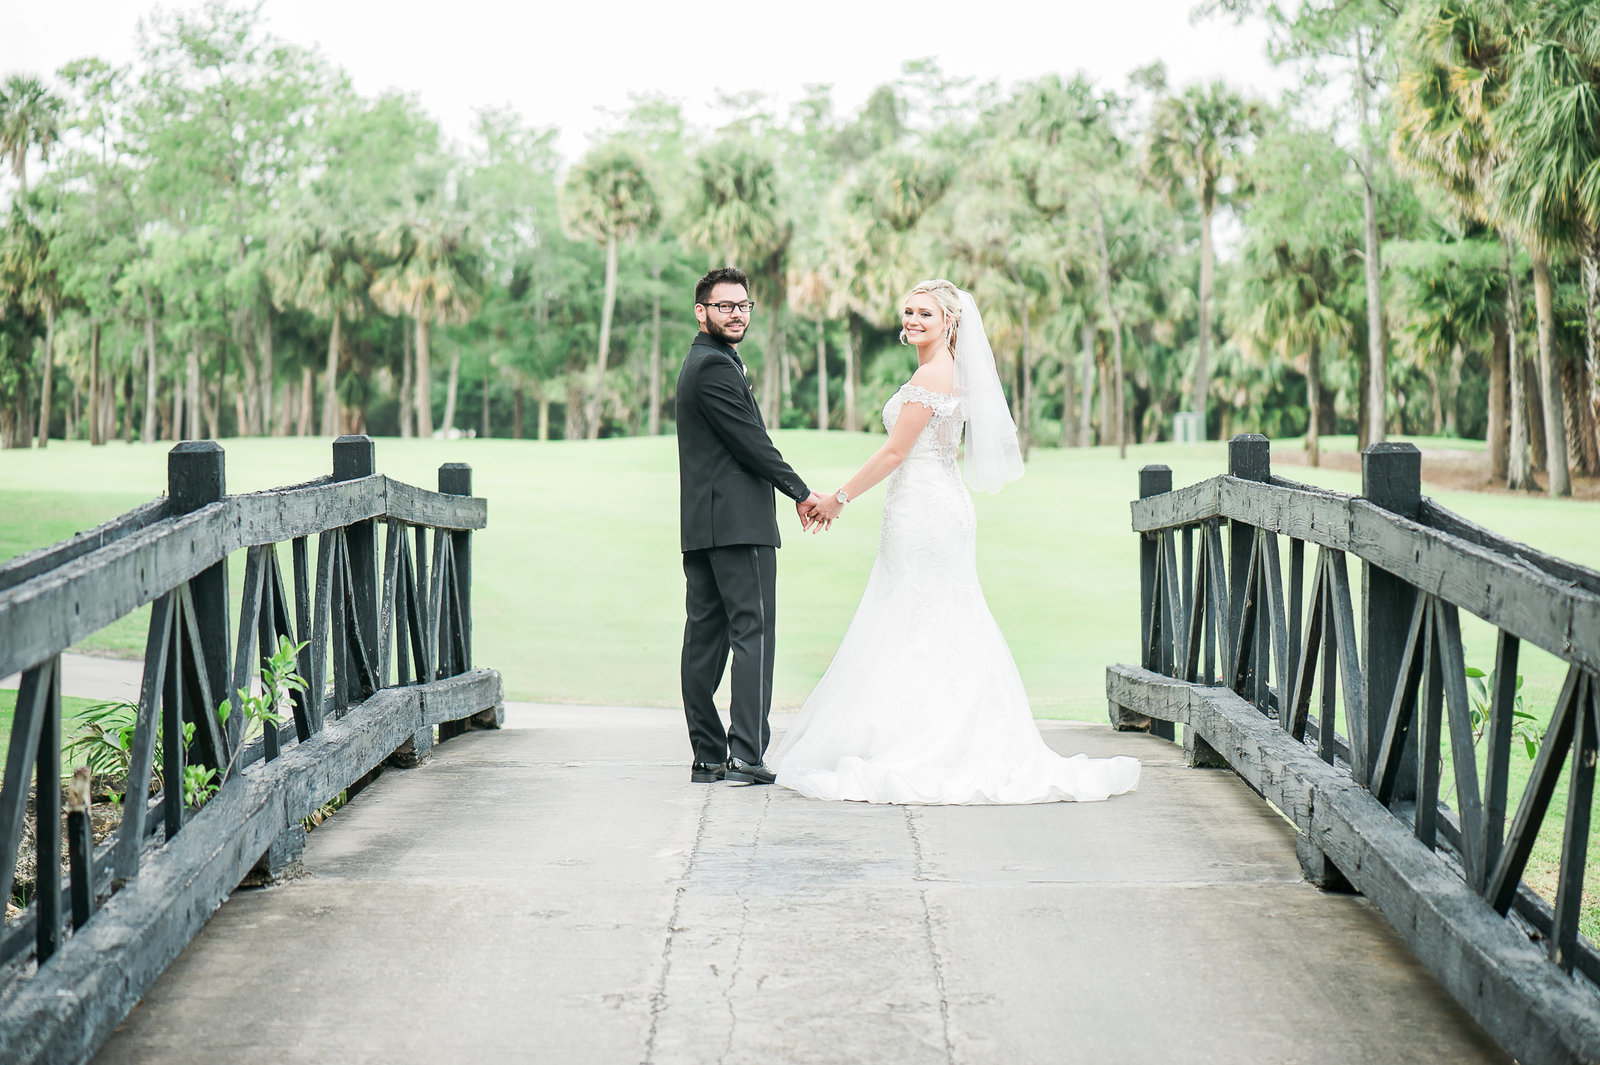 Old Bridge Wedding - Myacoo Country Club Wedding - Palm Beach Wedding Photography by Palm Beach Photography, Inc.